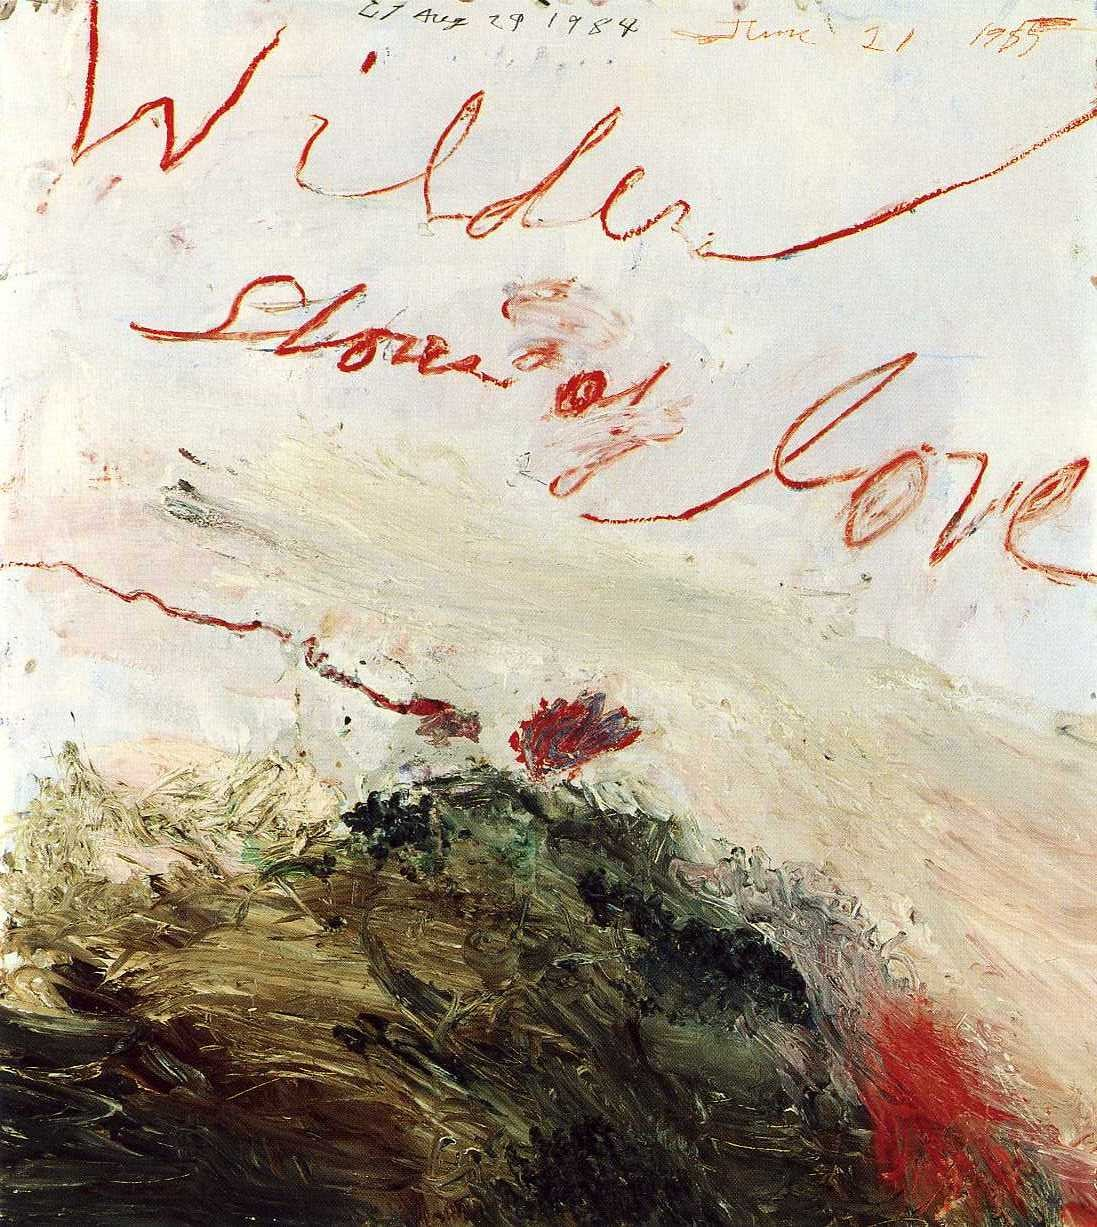 Cy Twombly (American, Contemporary, 1928–2011): Wilder Shores of Love, Bassano in Teverina, 1985, Oil based house paint, oil crayon, coloured pencil, lead pencil on wooden panel, 55-1/8 x 47-1/4 inches (140 x 120 cm), Private Collection. © Cy Twombly, Walther Dräyer, Zürich. © This artwork may be protected by copyright. It is posted on the site in accordance with fair use principles.